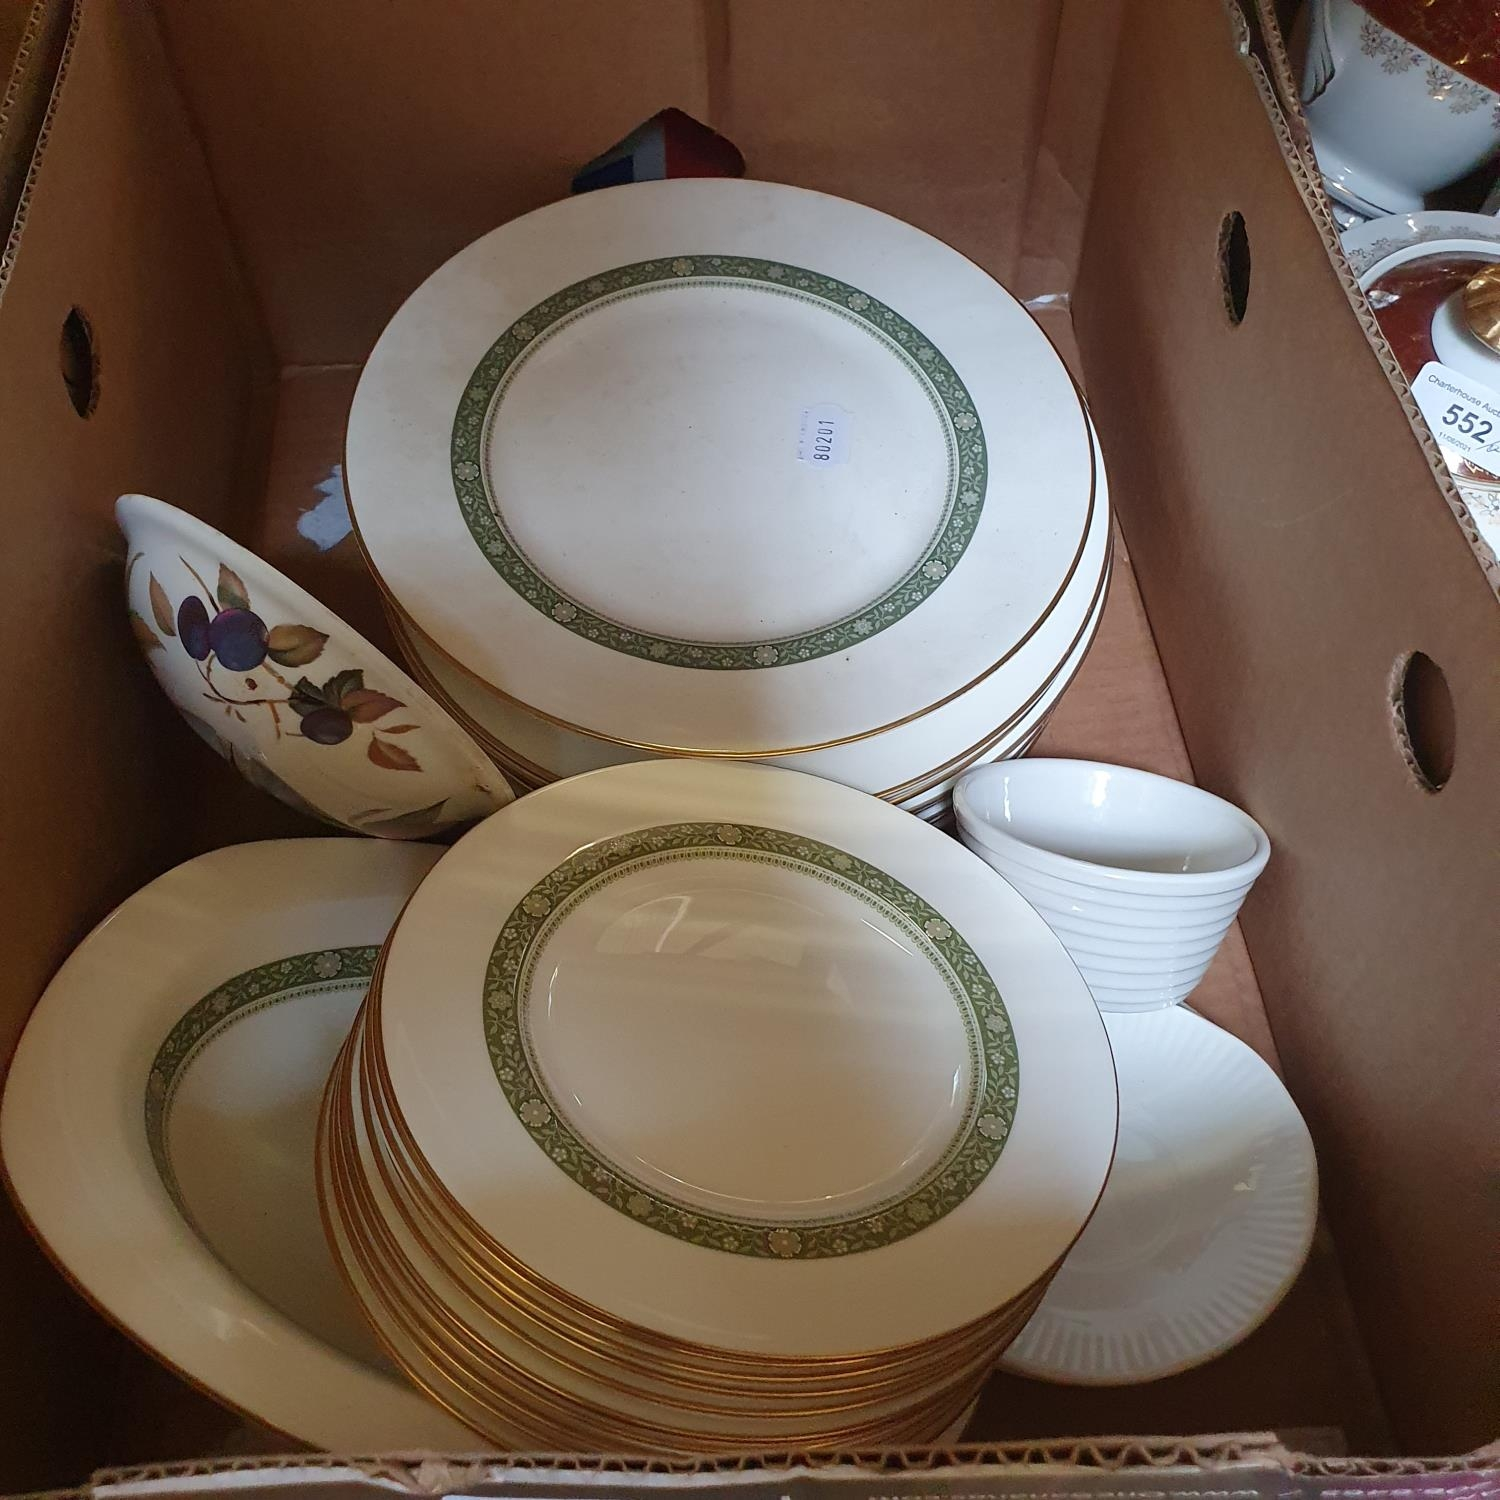 A pair of Staffordshire flat back spaniels, a Royal Doulton part dinner service, other ceramics - Image 10 of 15